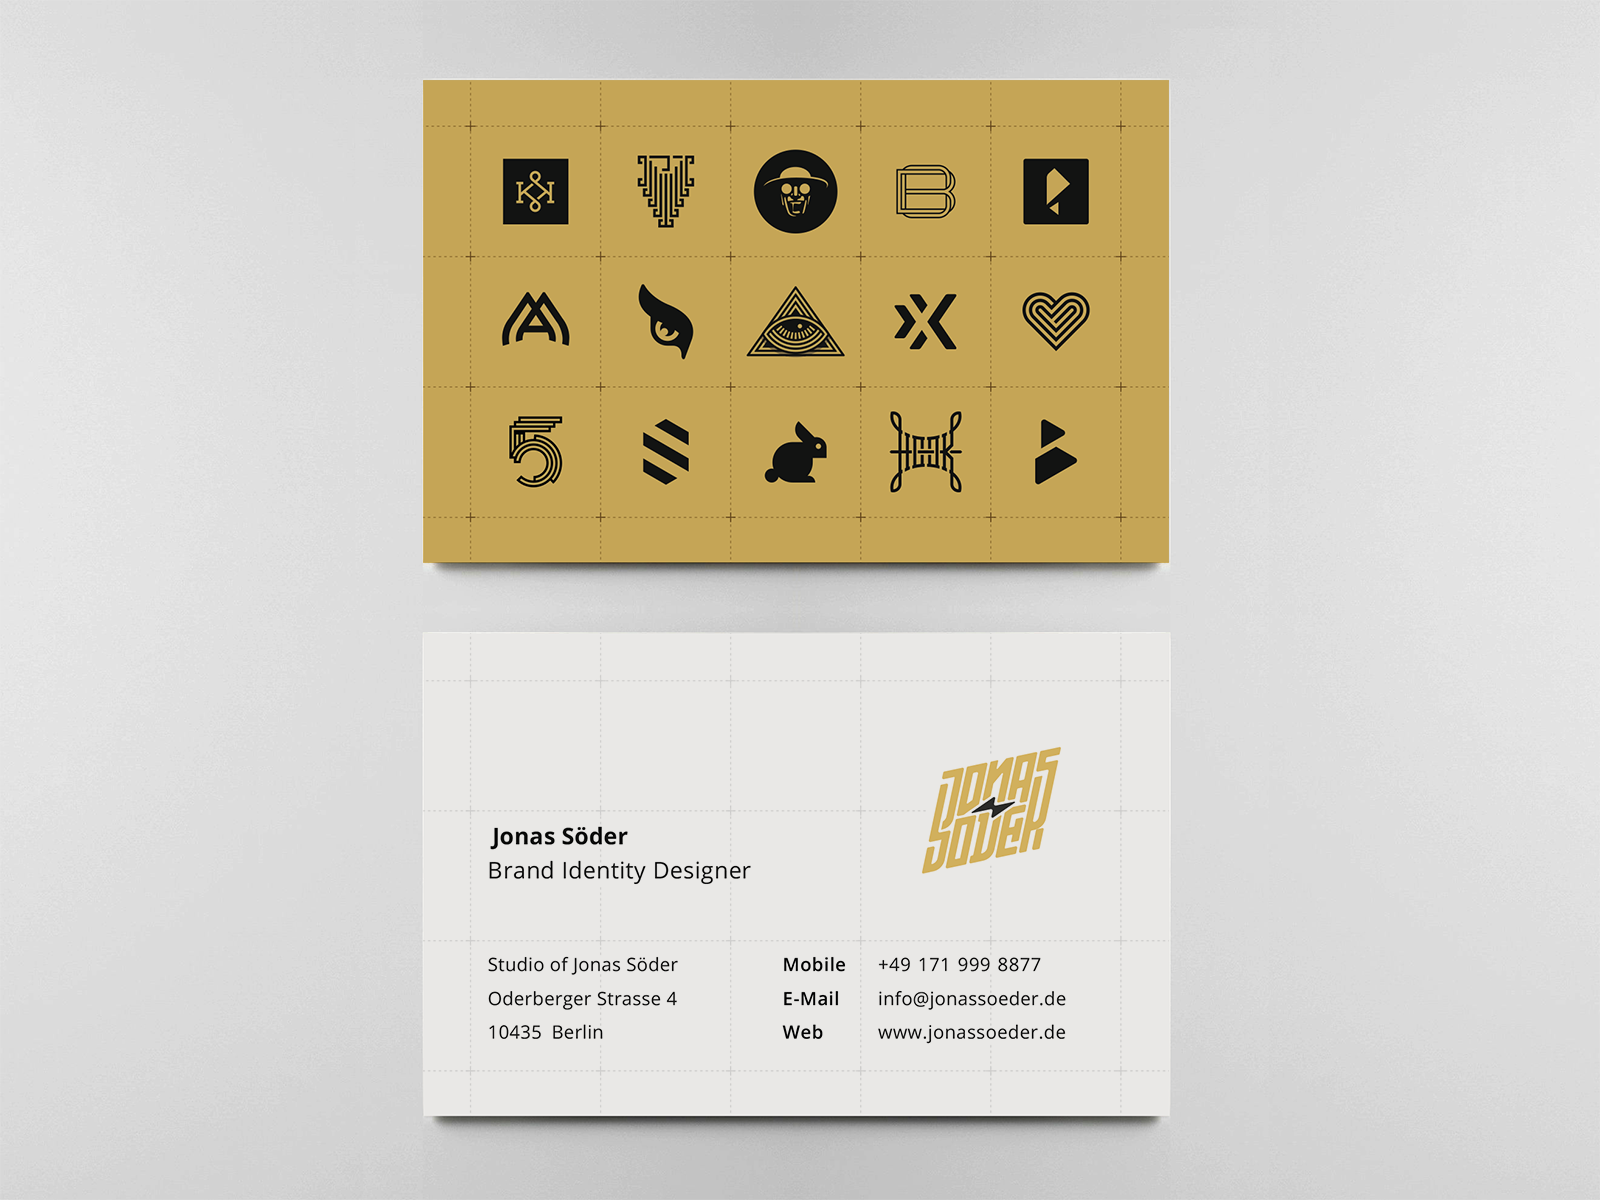 Business Card Design 2020.Business Cards 2020 By Jonas Soder On Dribbble